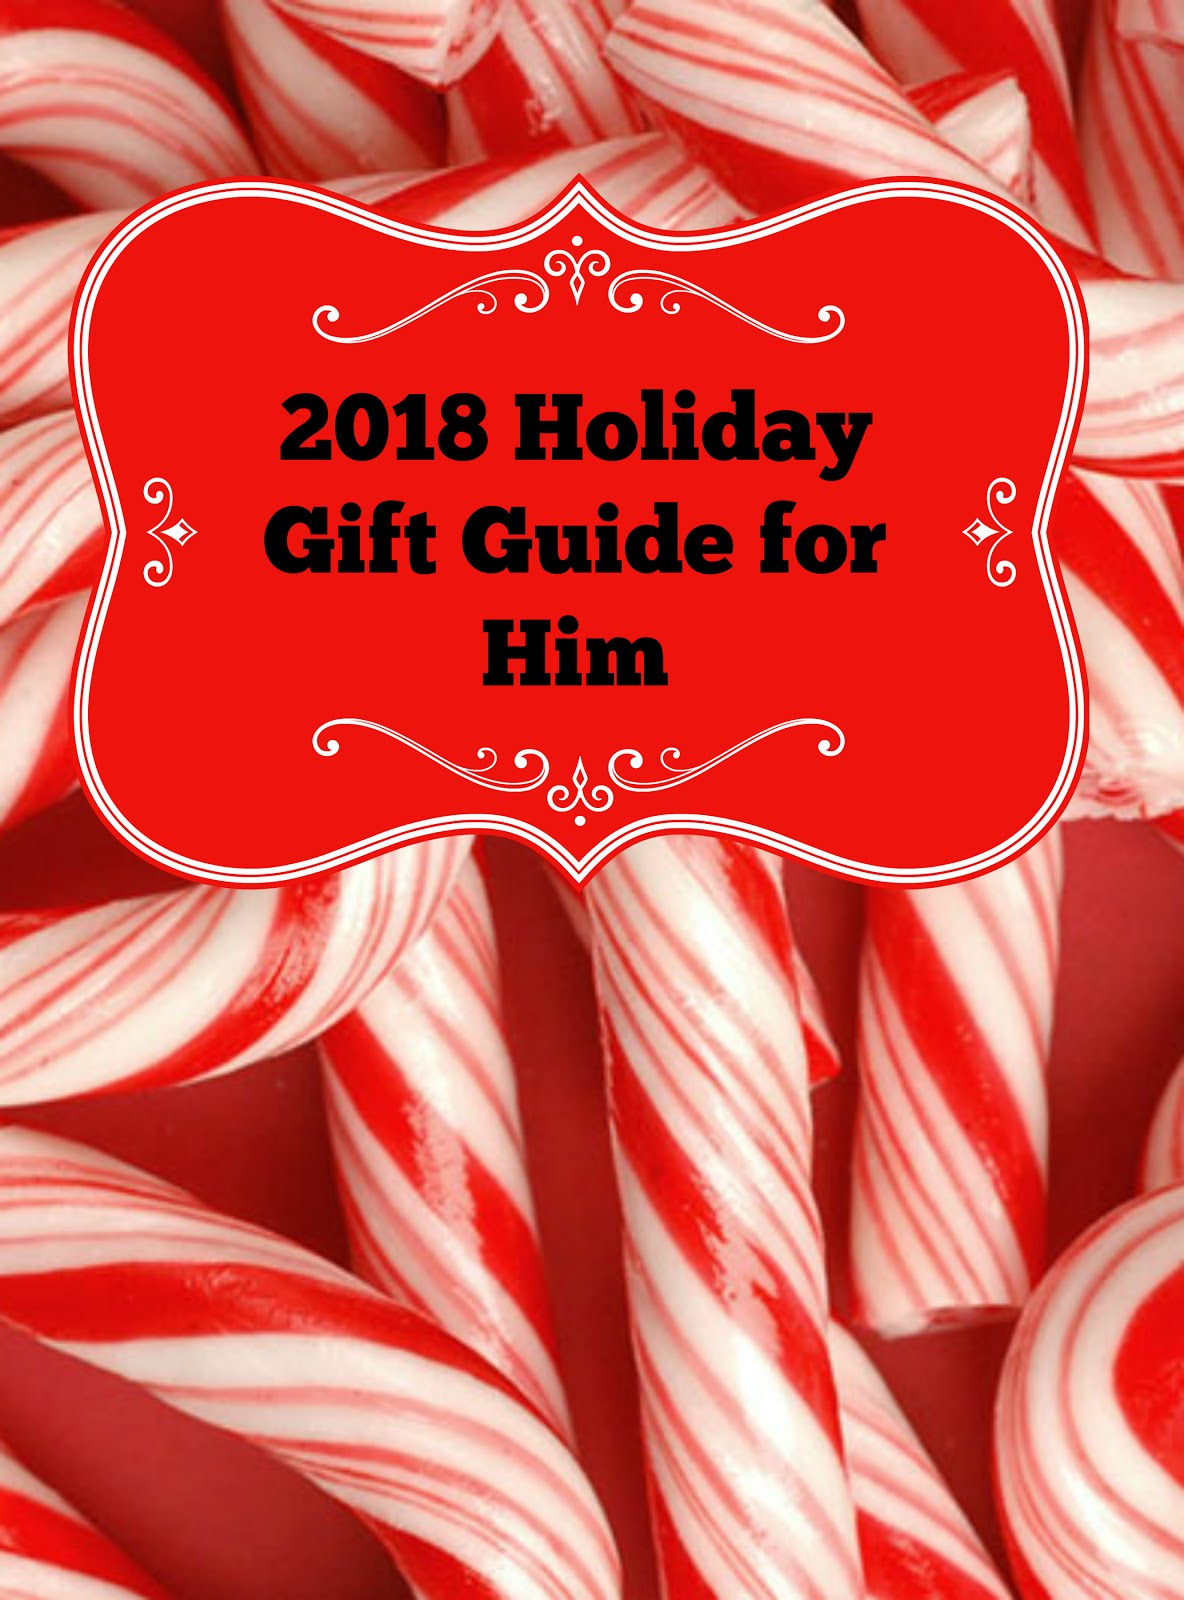 2018 Holiday Gift Guide for Him!